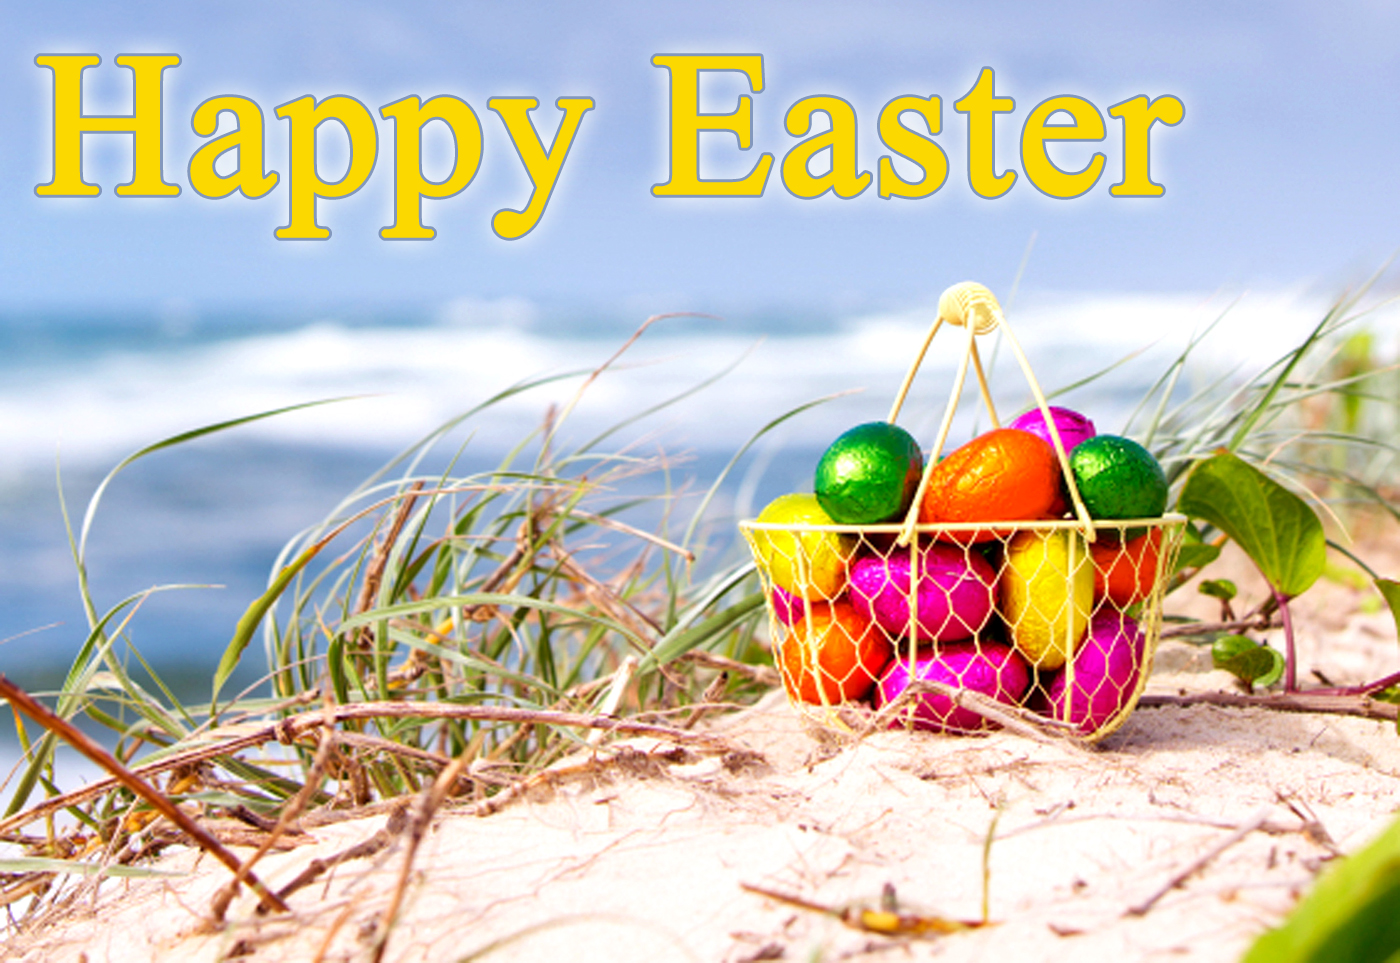 Easter Holiday Greeting Cards Wallpapers E Cards For Friends And